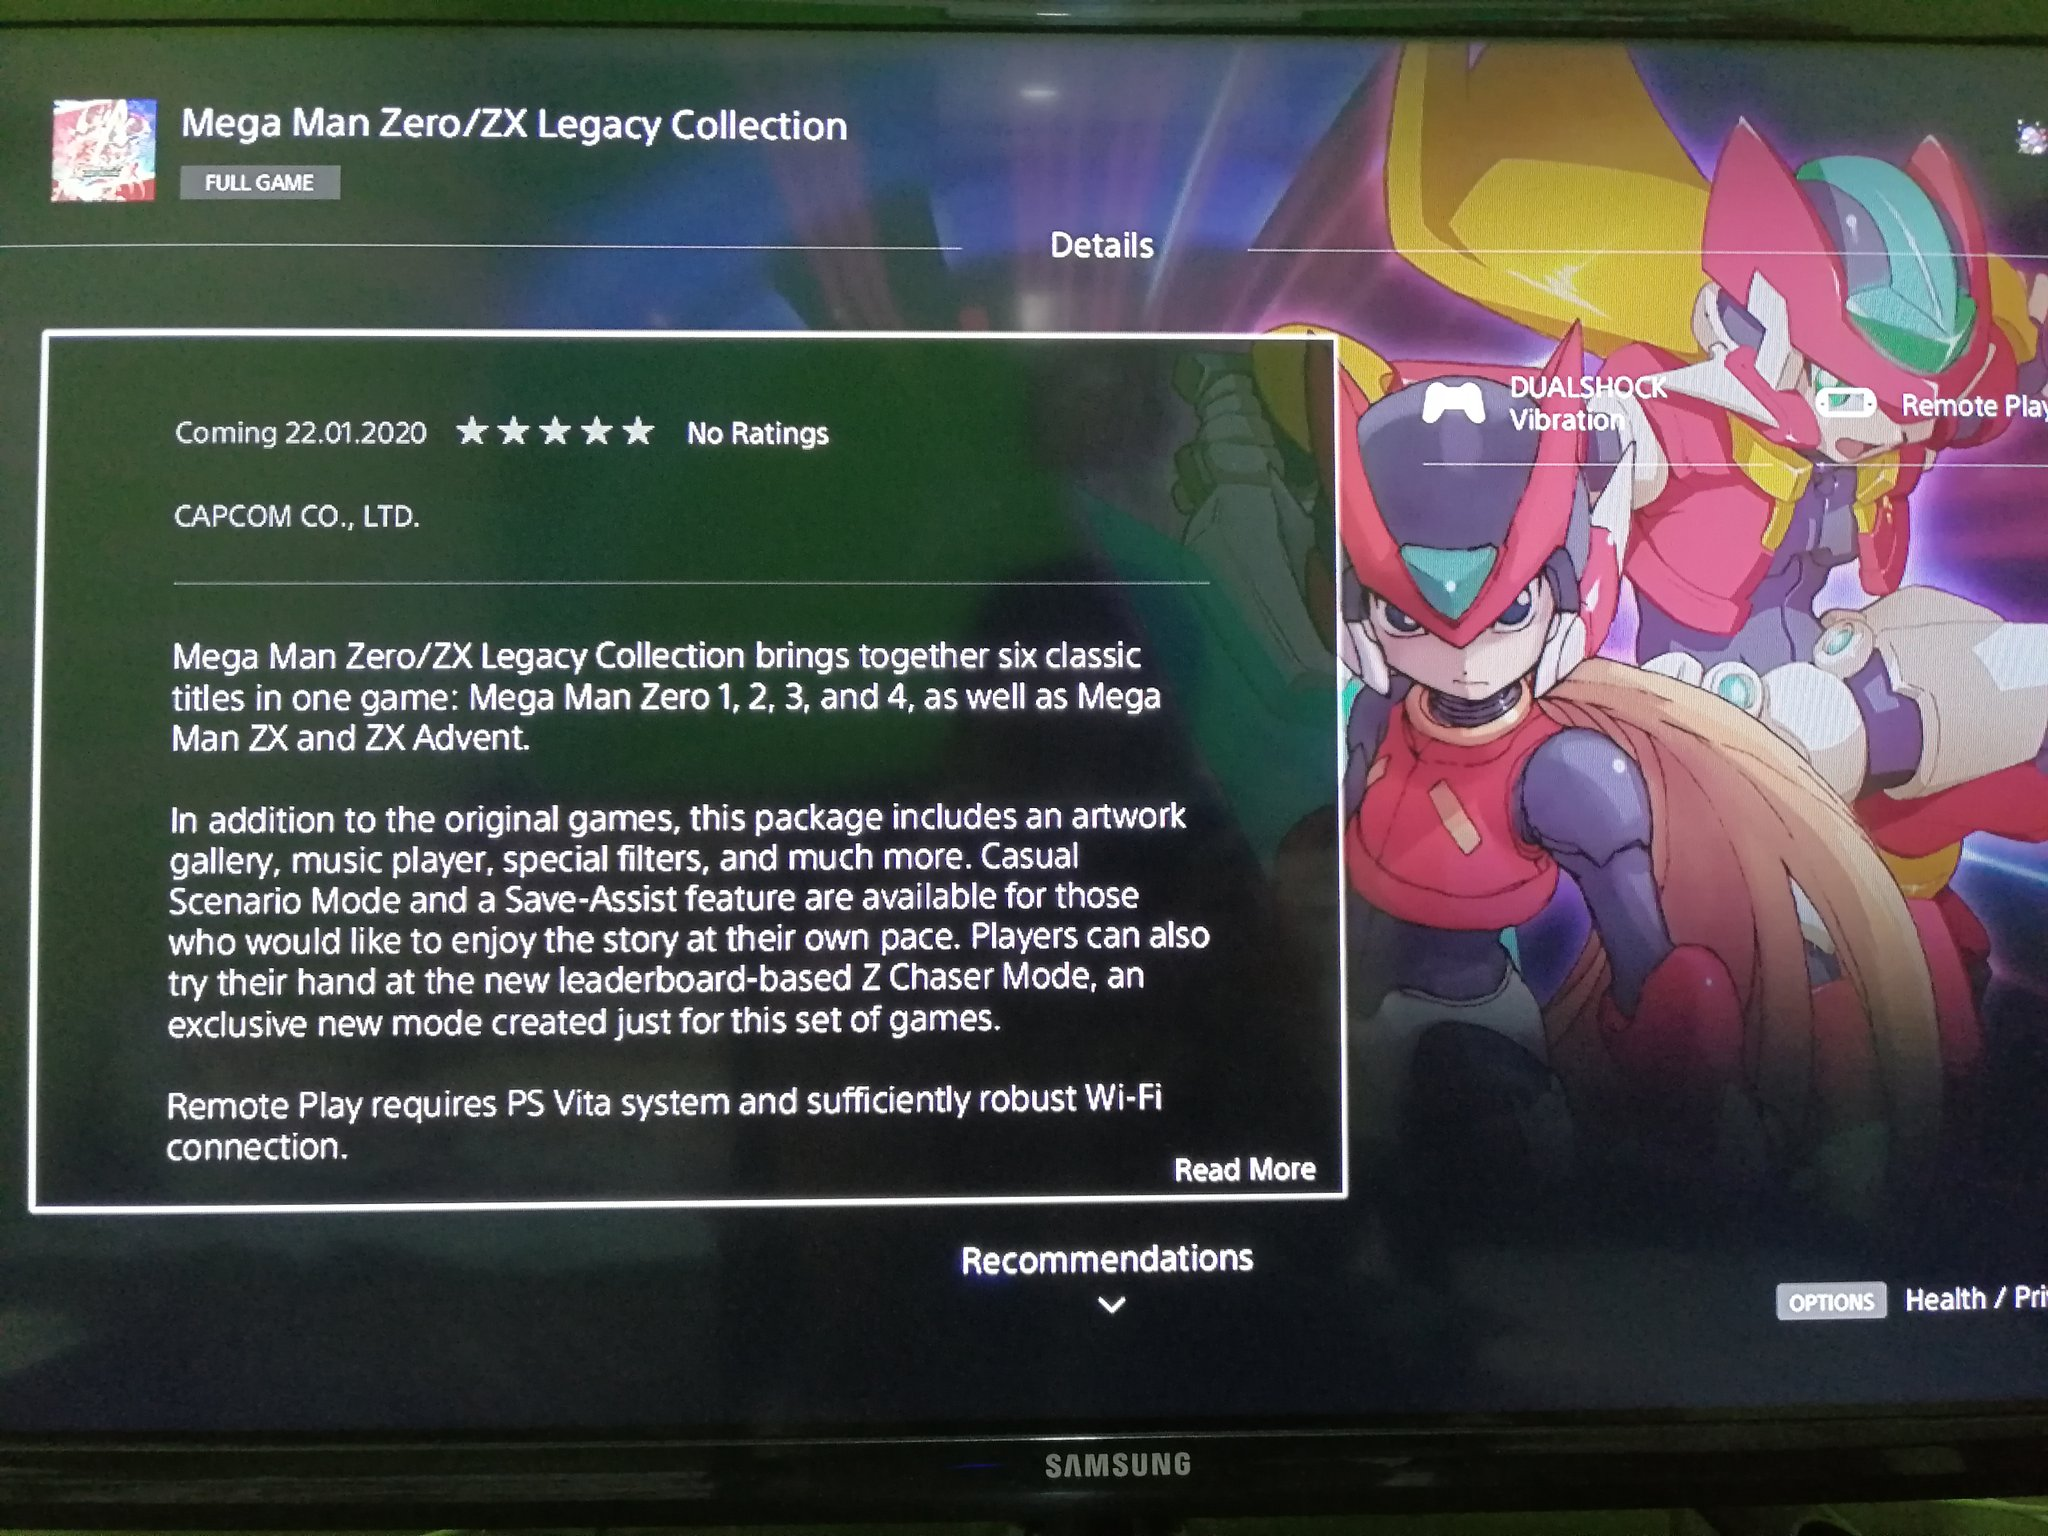 MegaMan Zero/ZX collection leaked, likely PS4/Xbox/PC